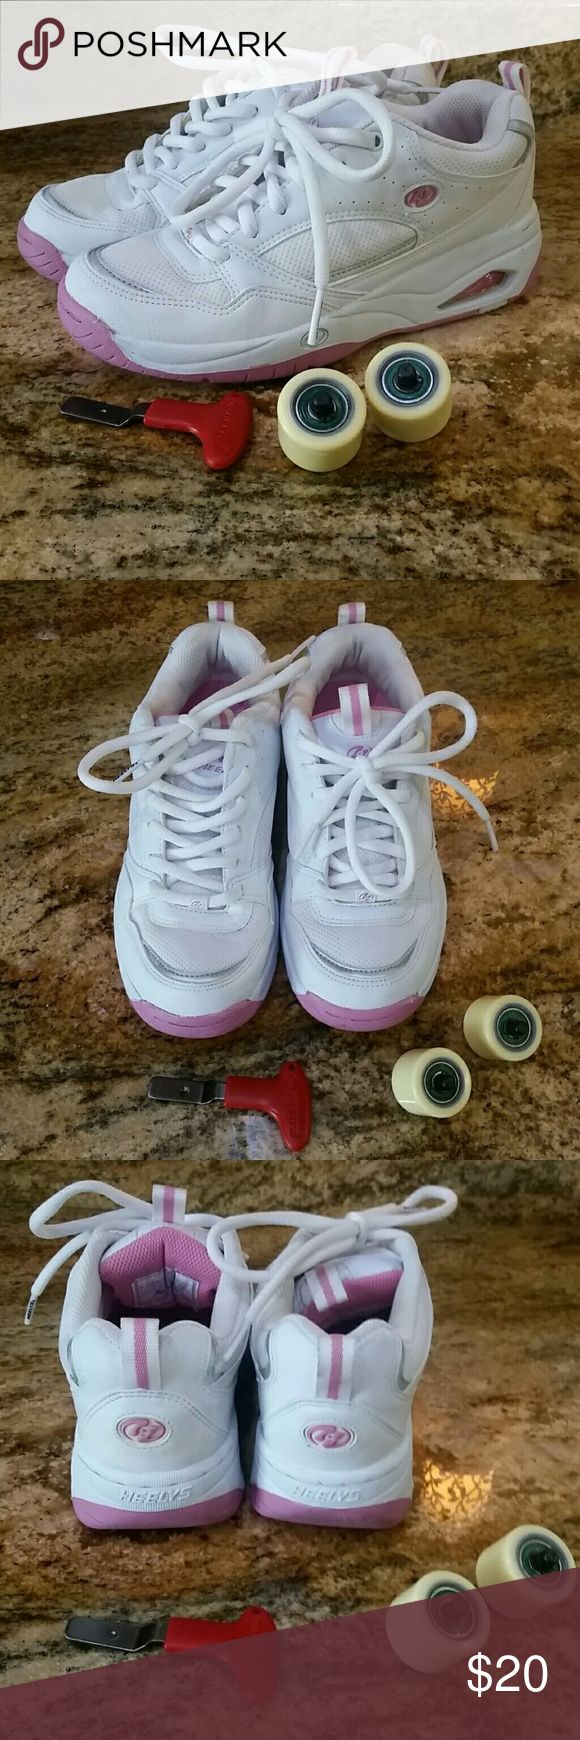 EUC Heely's White / Pink Shoes Heely's White / Pink Shoes, comes with wheels and tool. Only worn a handful of times, EUC and very clean. No scuffs or wear. Sorry, no box. Heelys Shoes Sneakers